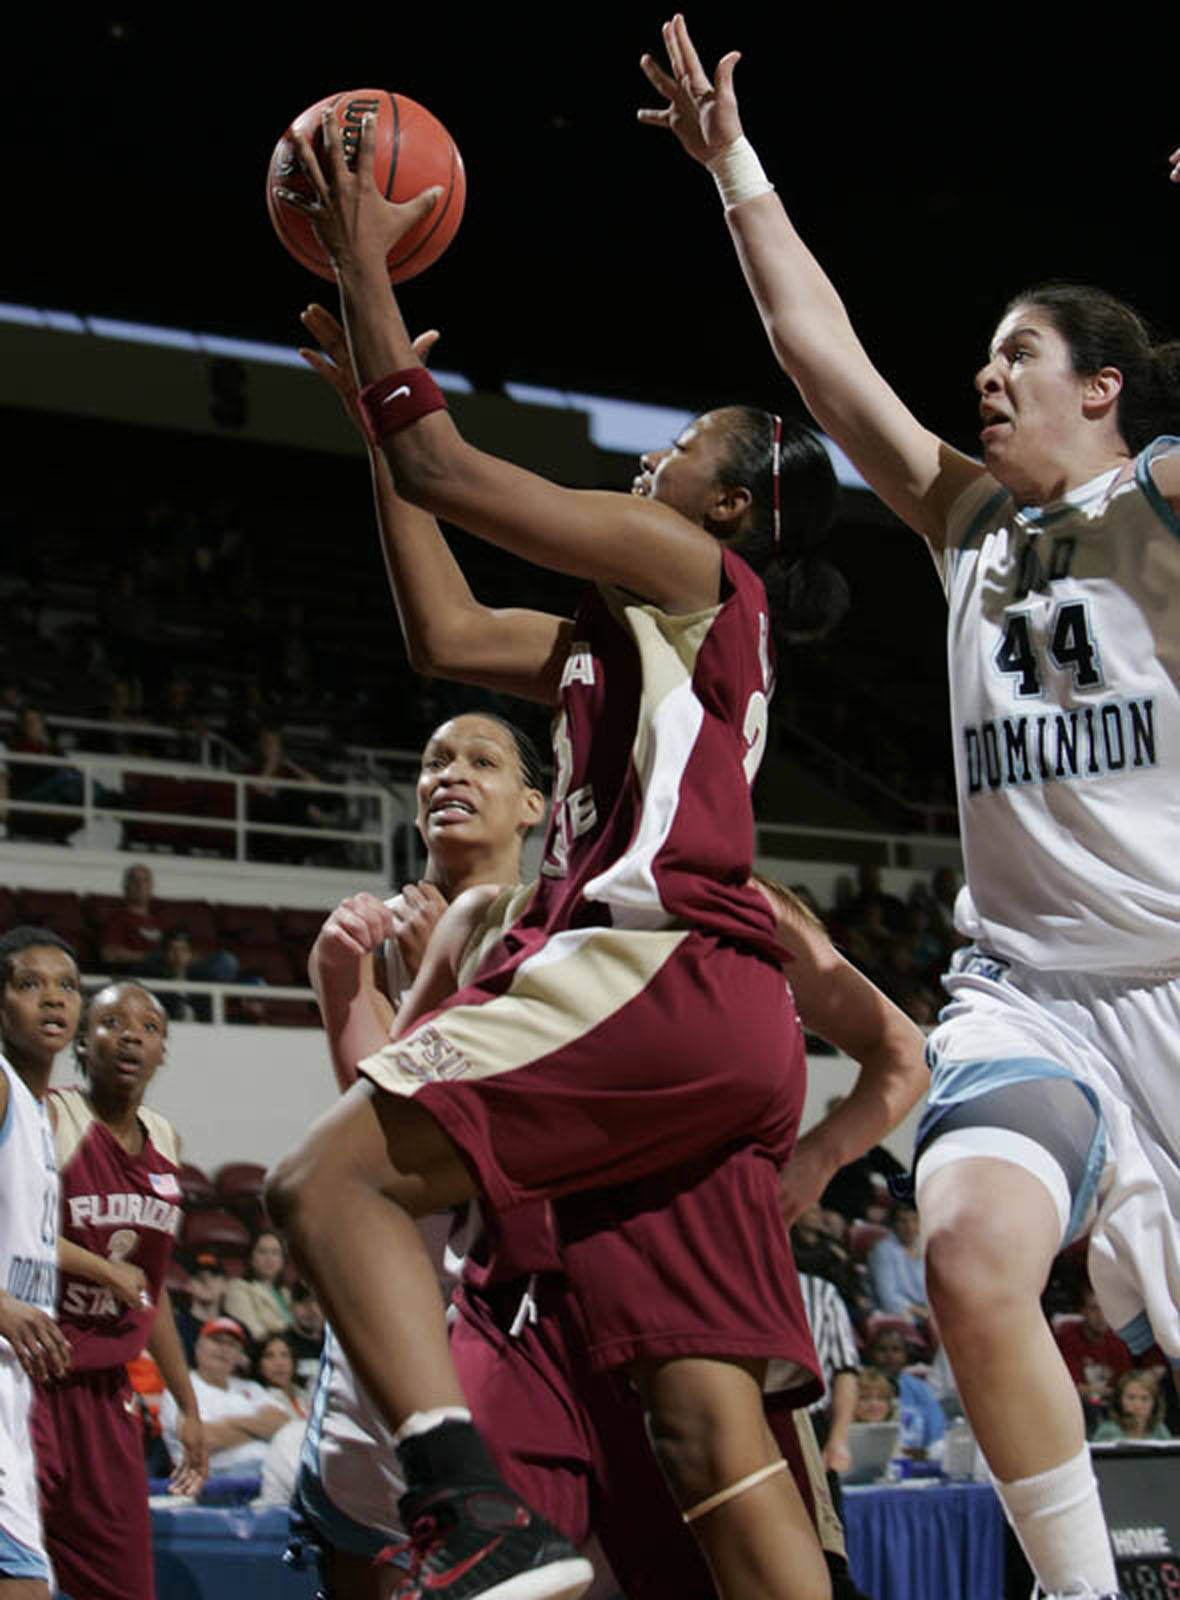 Alicia Gladden is the only senior on the Florida State team.